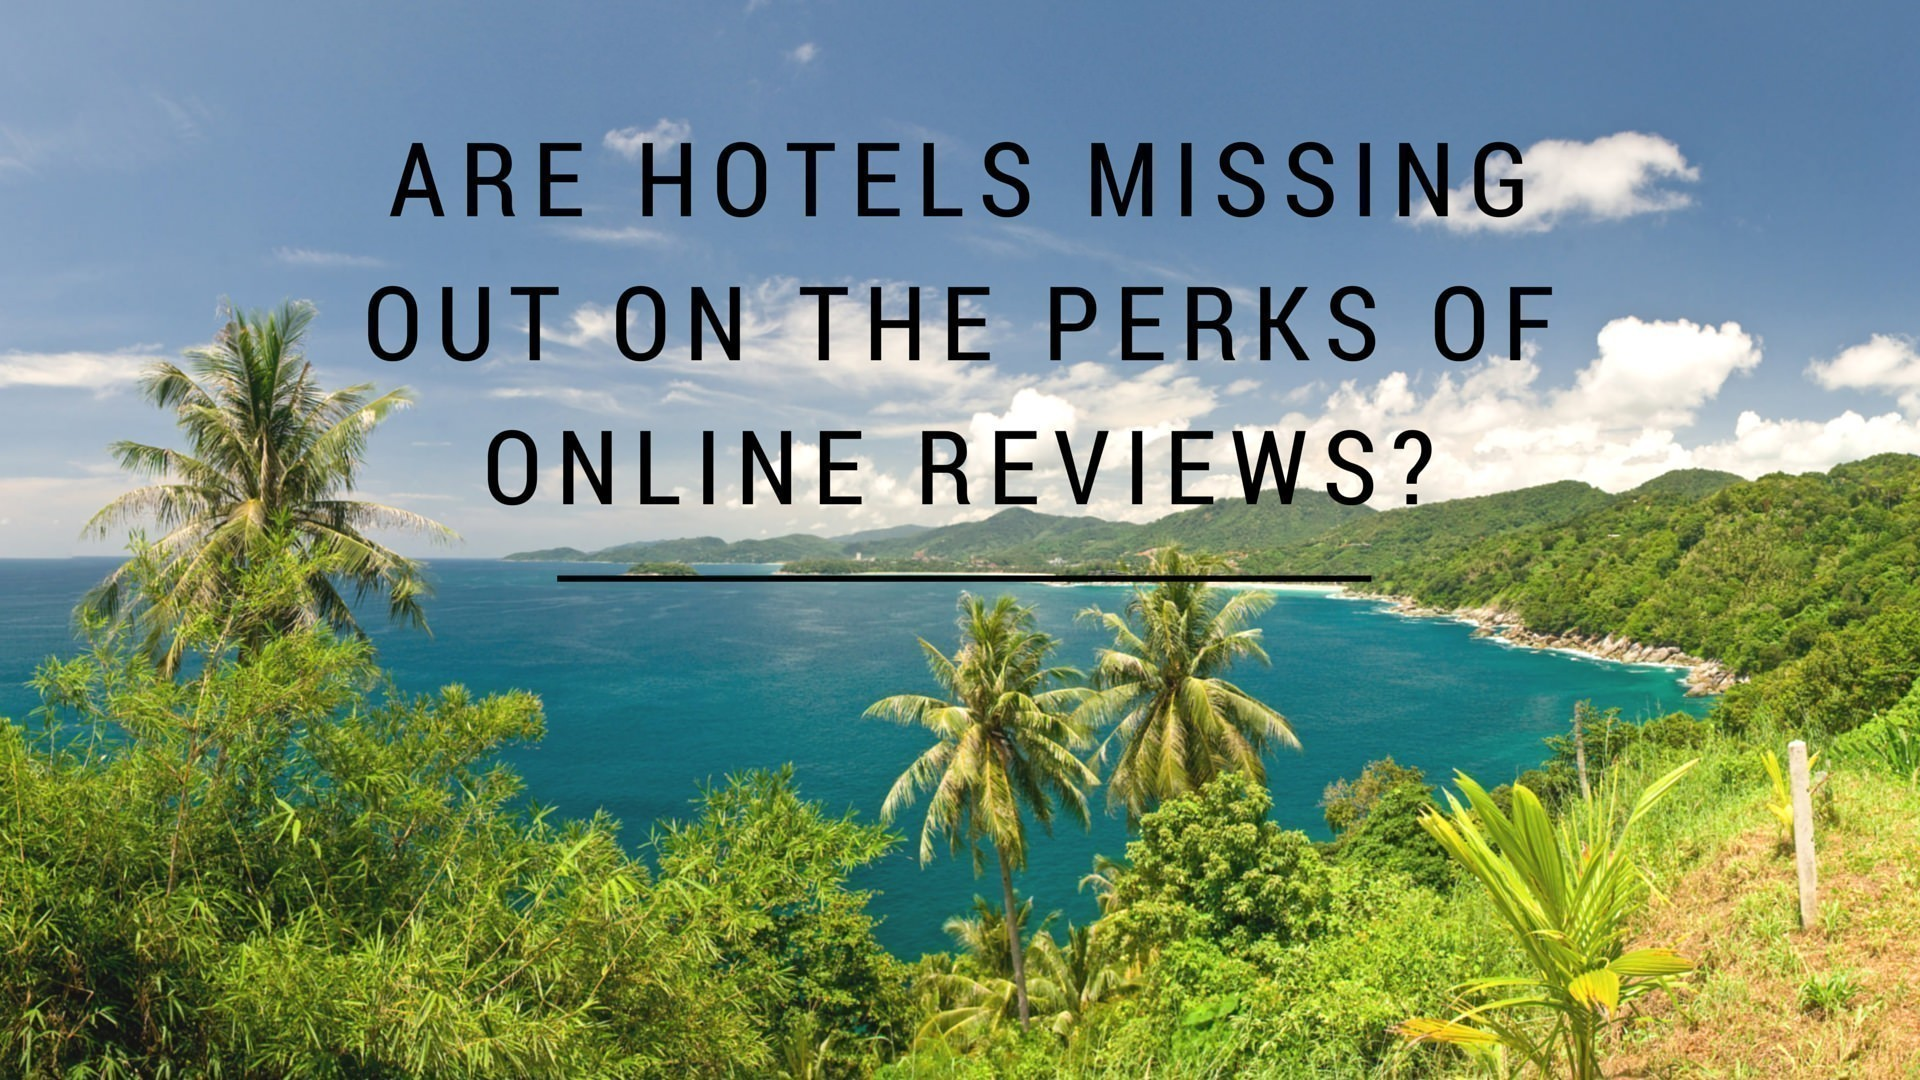 Are Hotels Missing Out on the Perks of Online Reviews?